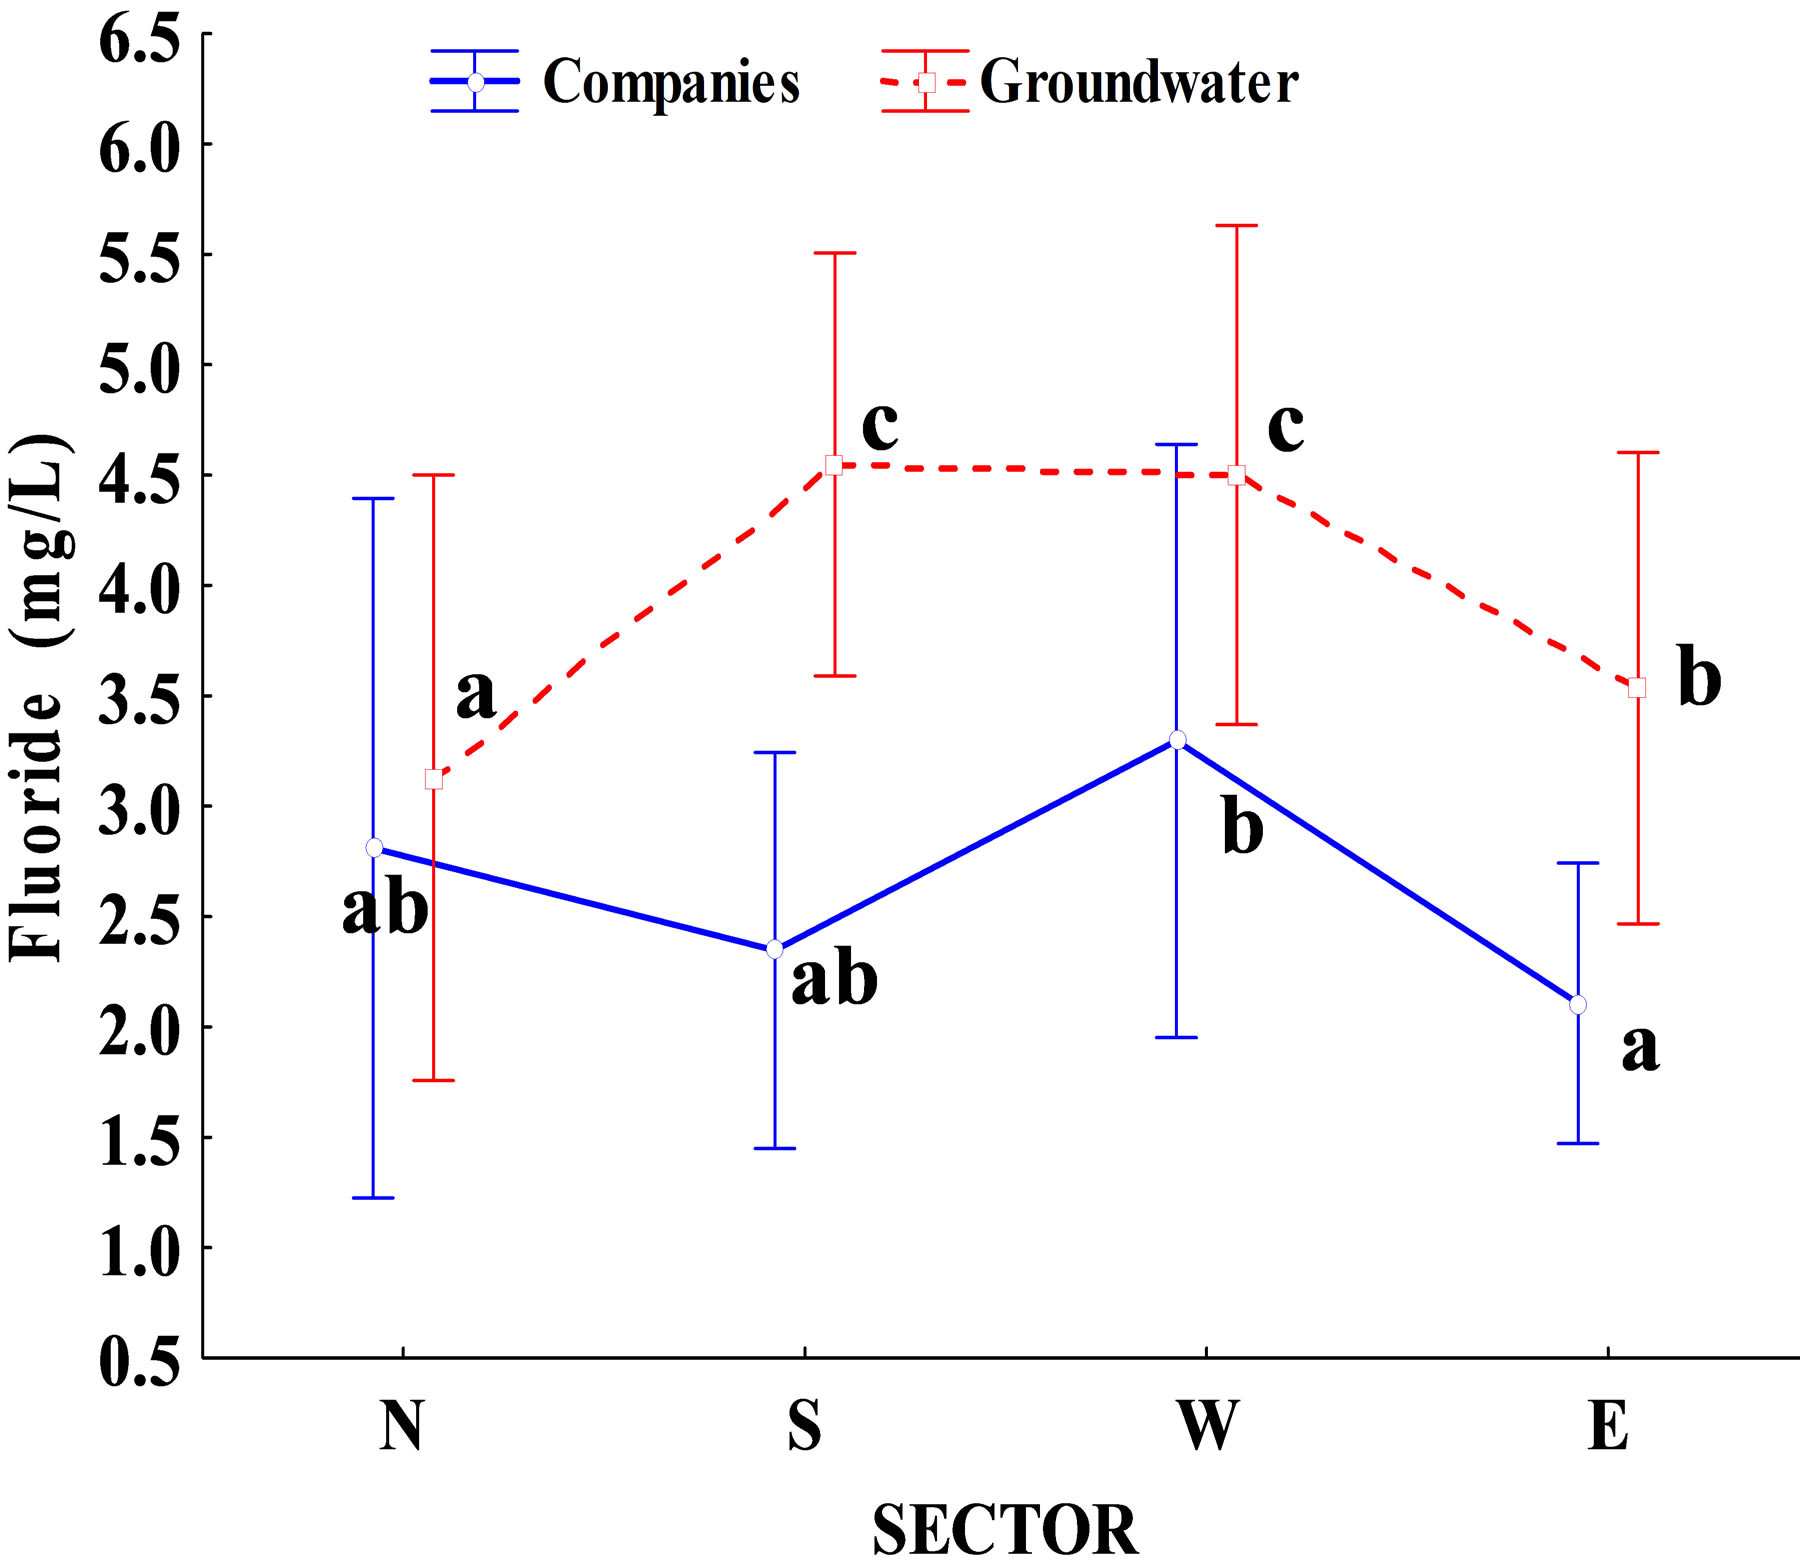 Statistical Analysis For Fluoride Concentration In Water Bottling Companies Versus Groundwater Wells In Durango City Mexico From Which Water Is Extracted